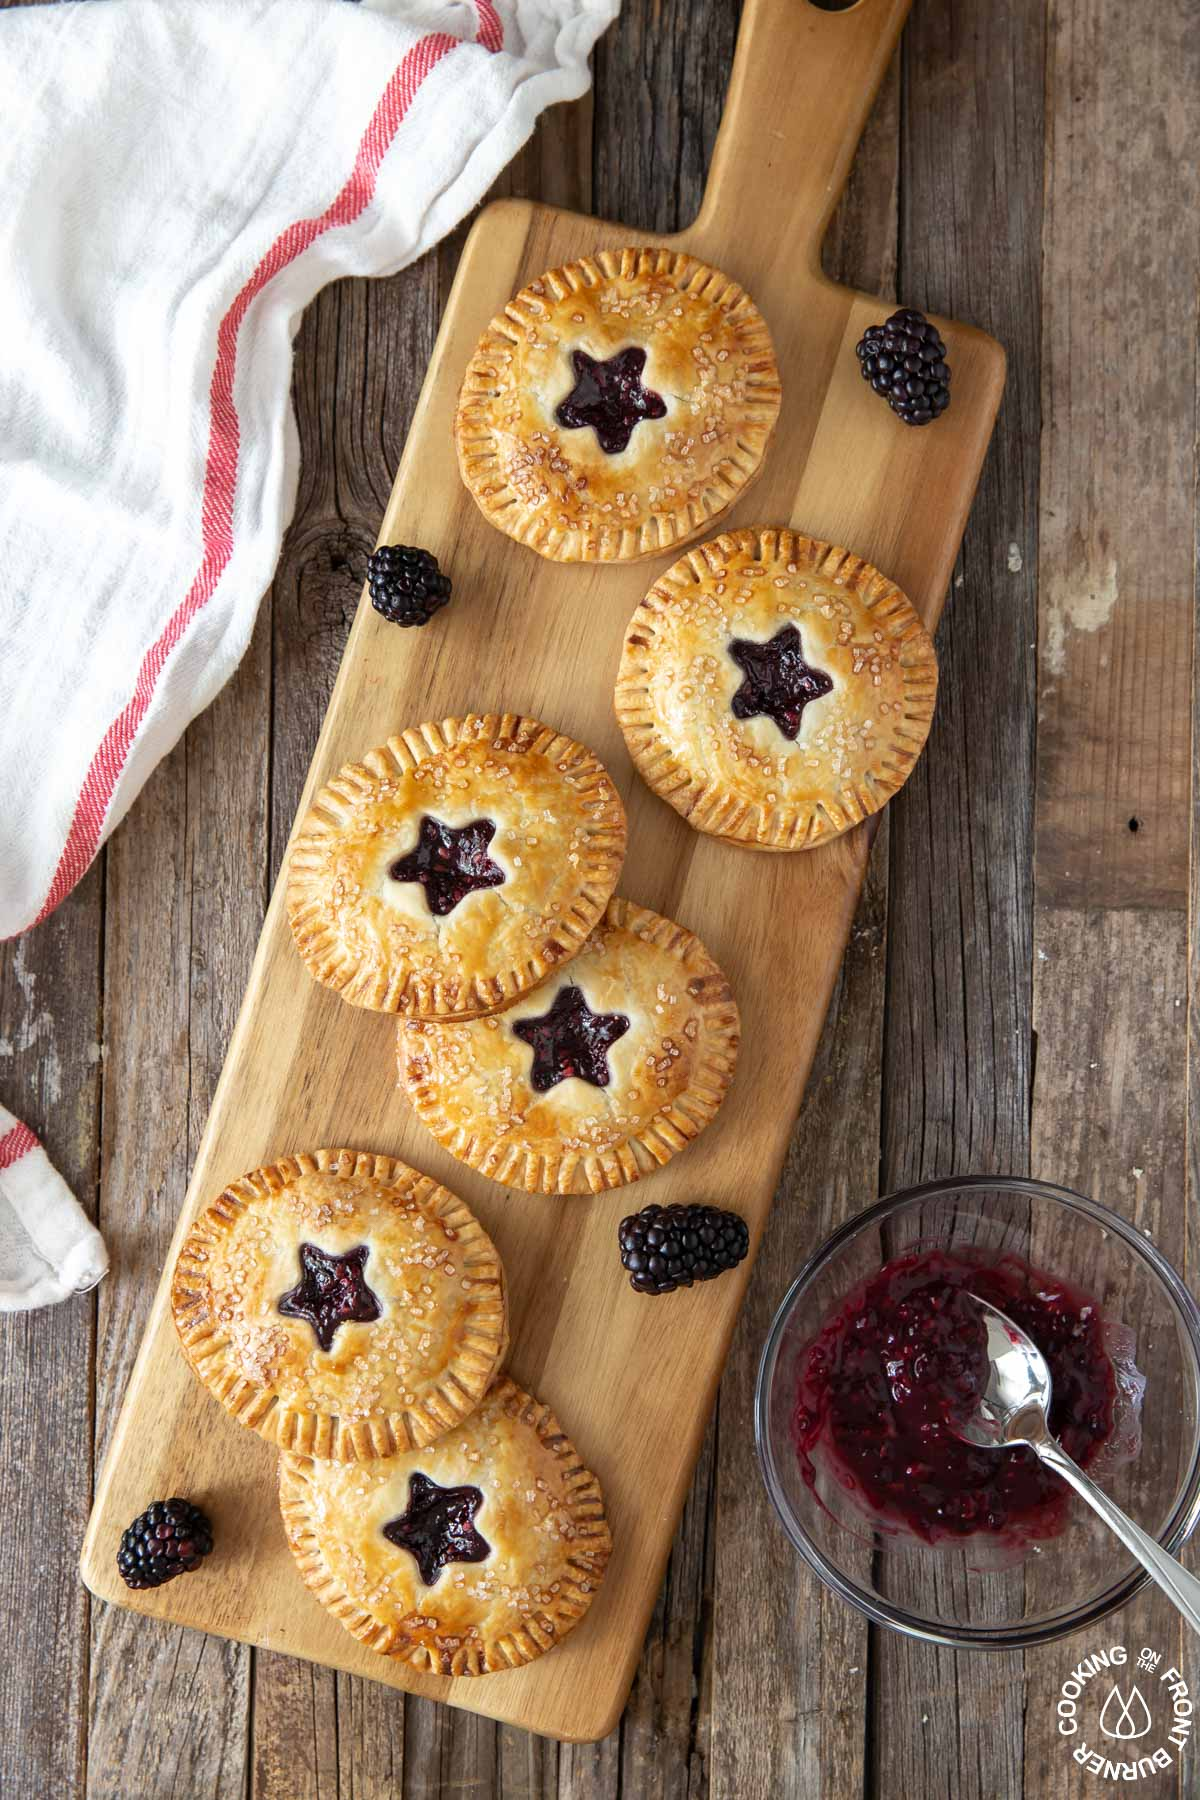 6 blackberry hand pies on a serving board